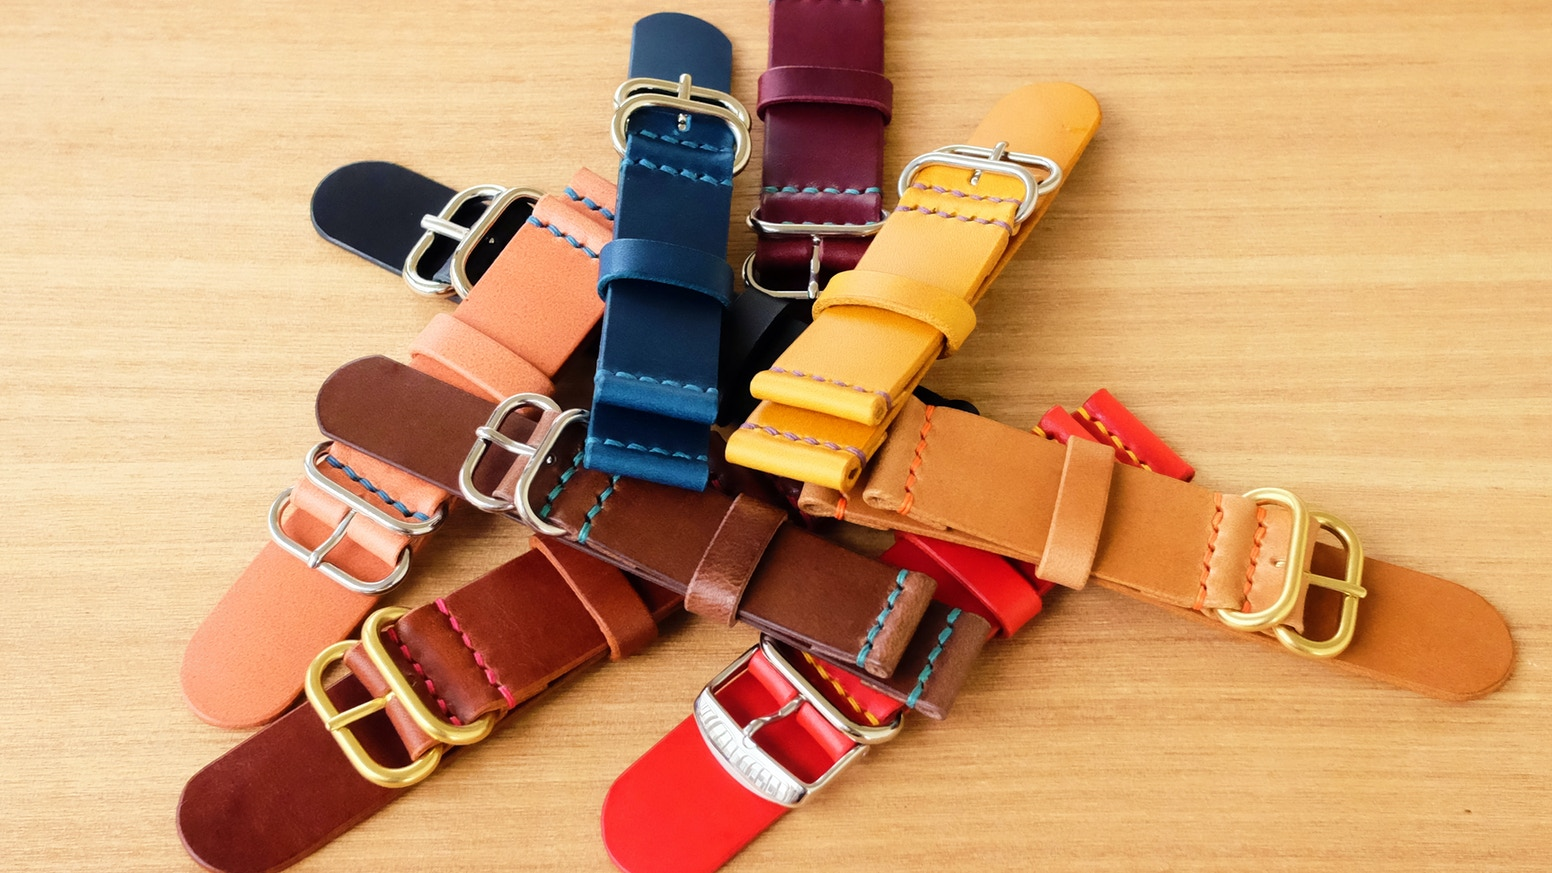 Unleash your inner creativity and design your own leather straps! Made from premium materials, this is one for you to keep a long time.